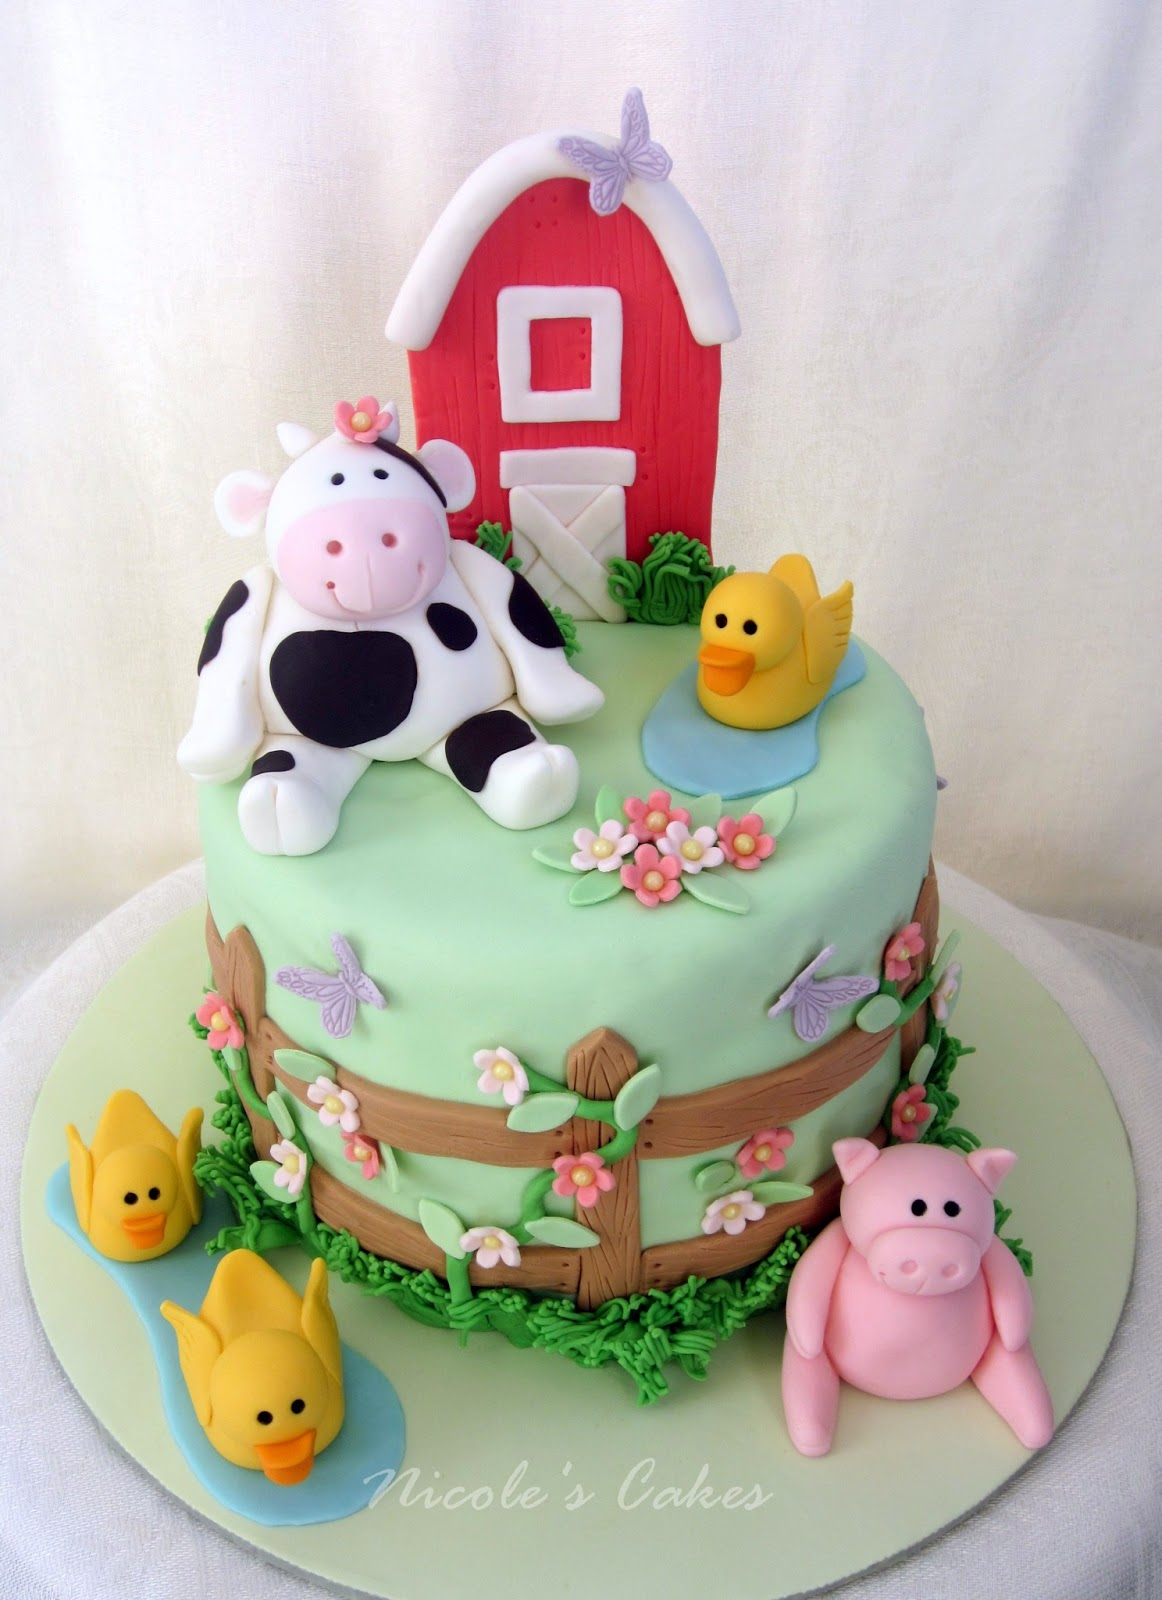 confections cakes creations farm themed baby shower cake